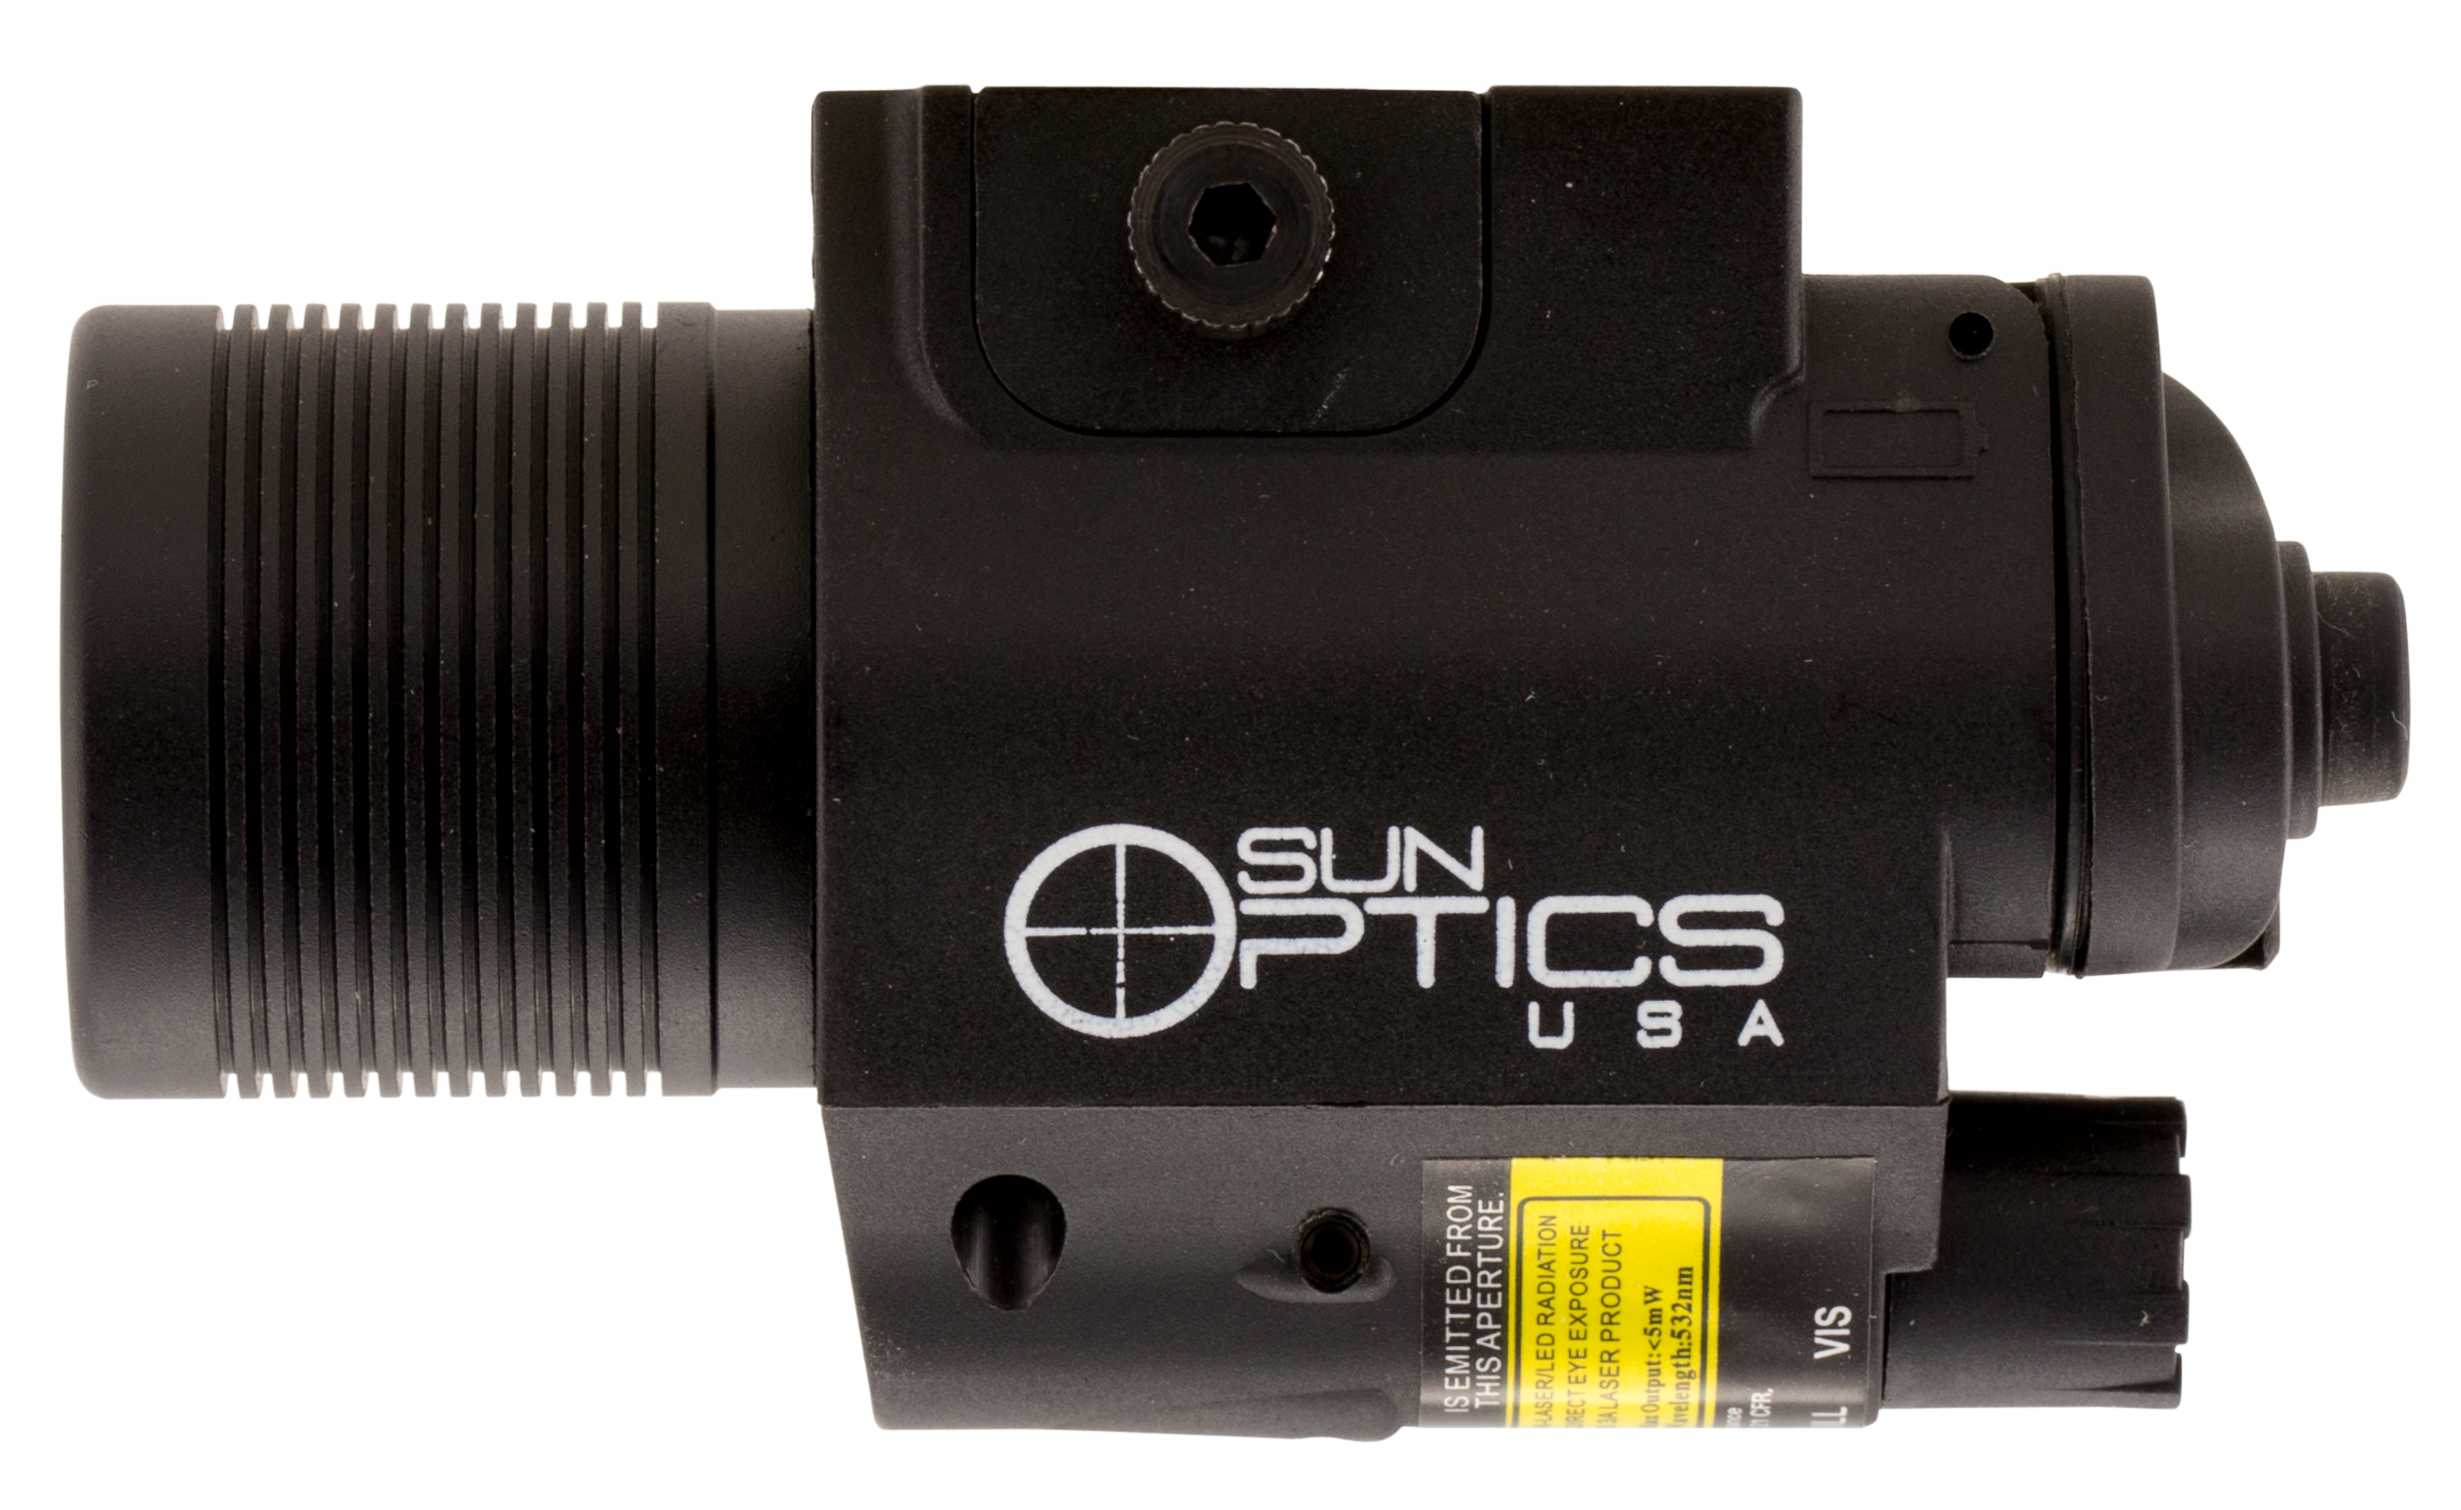 Sun Optics CLFCLG Illuminated Laser/Light Green Laser Any with Rail Picatinny/Mil-Spec/Weaver